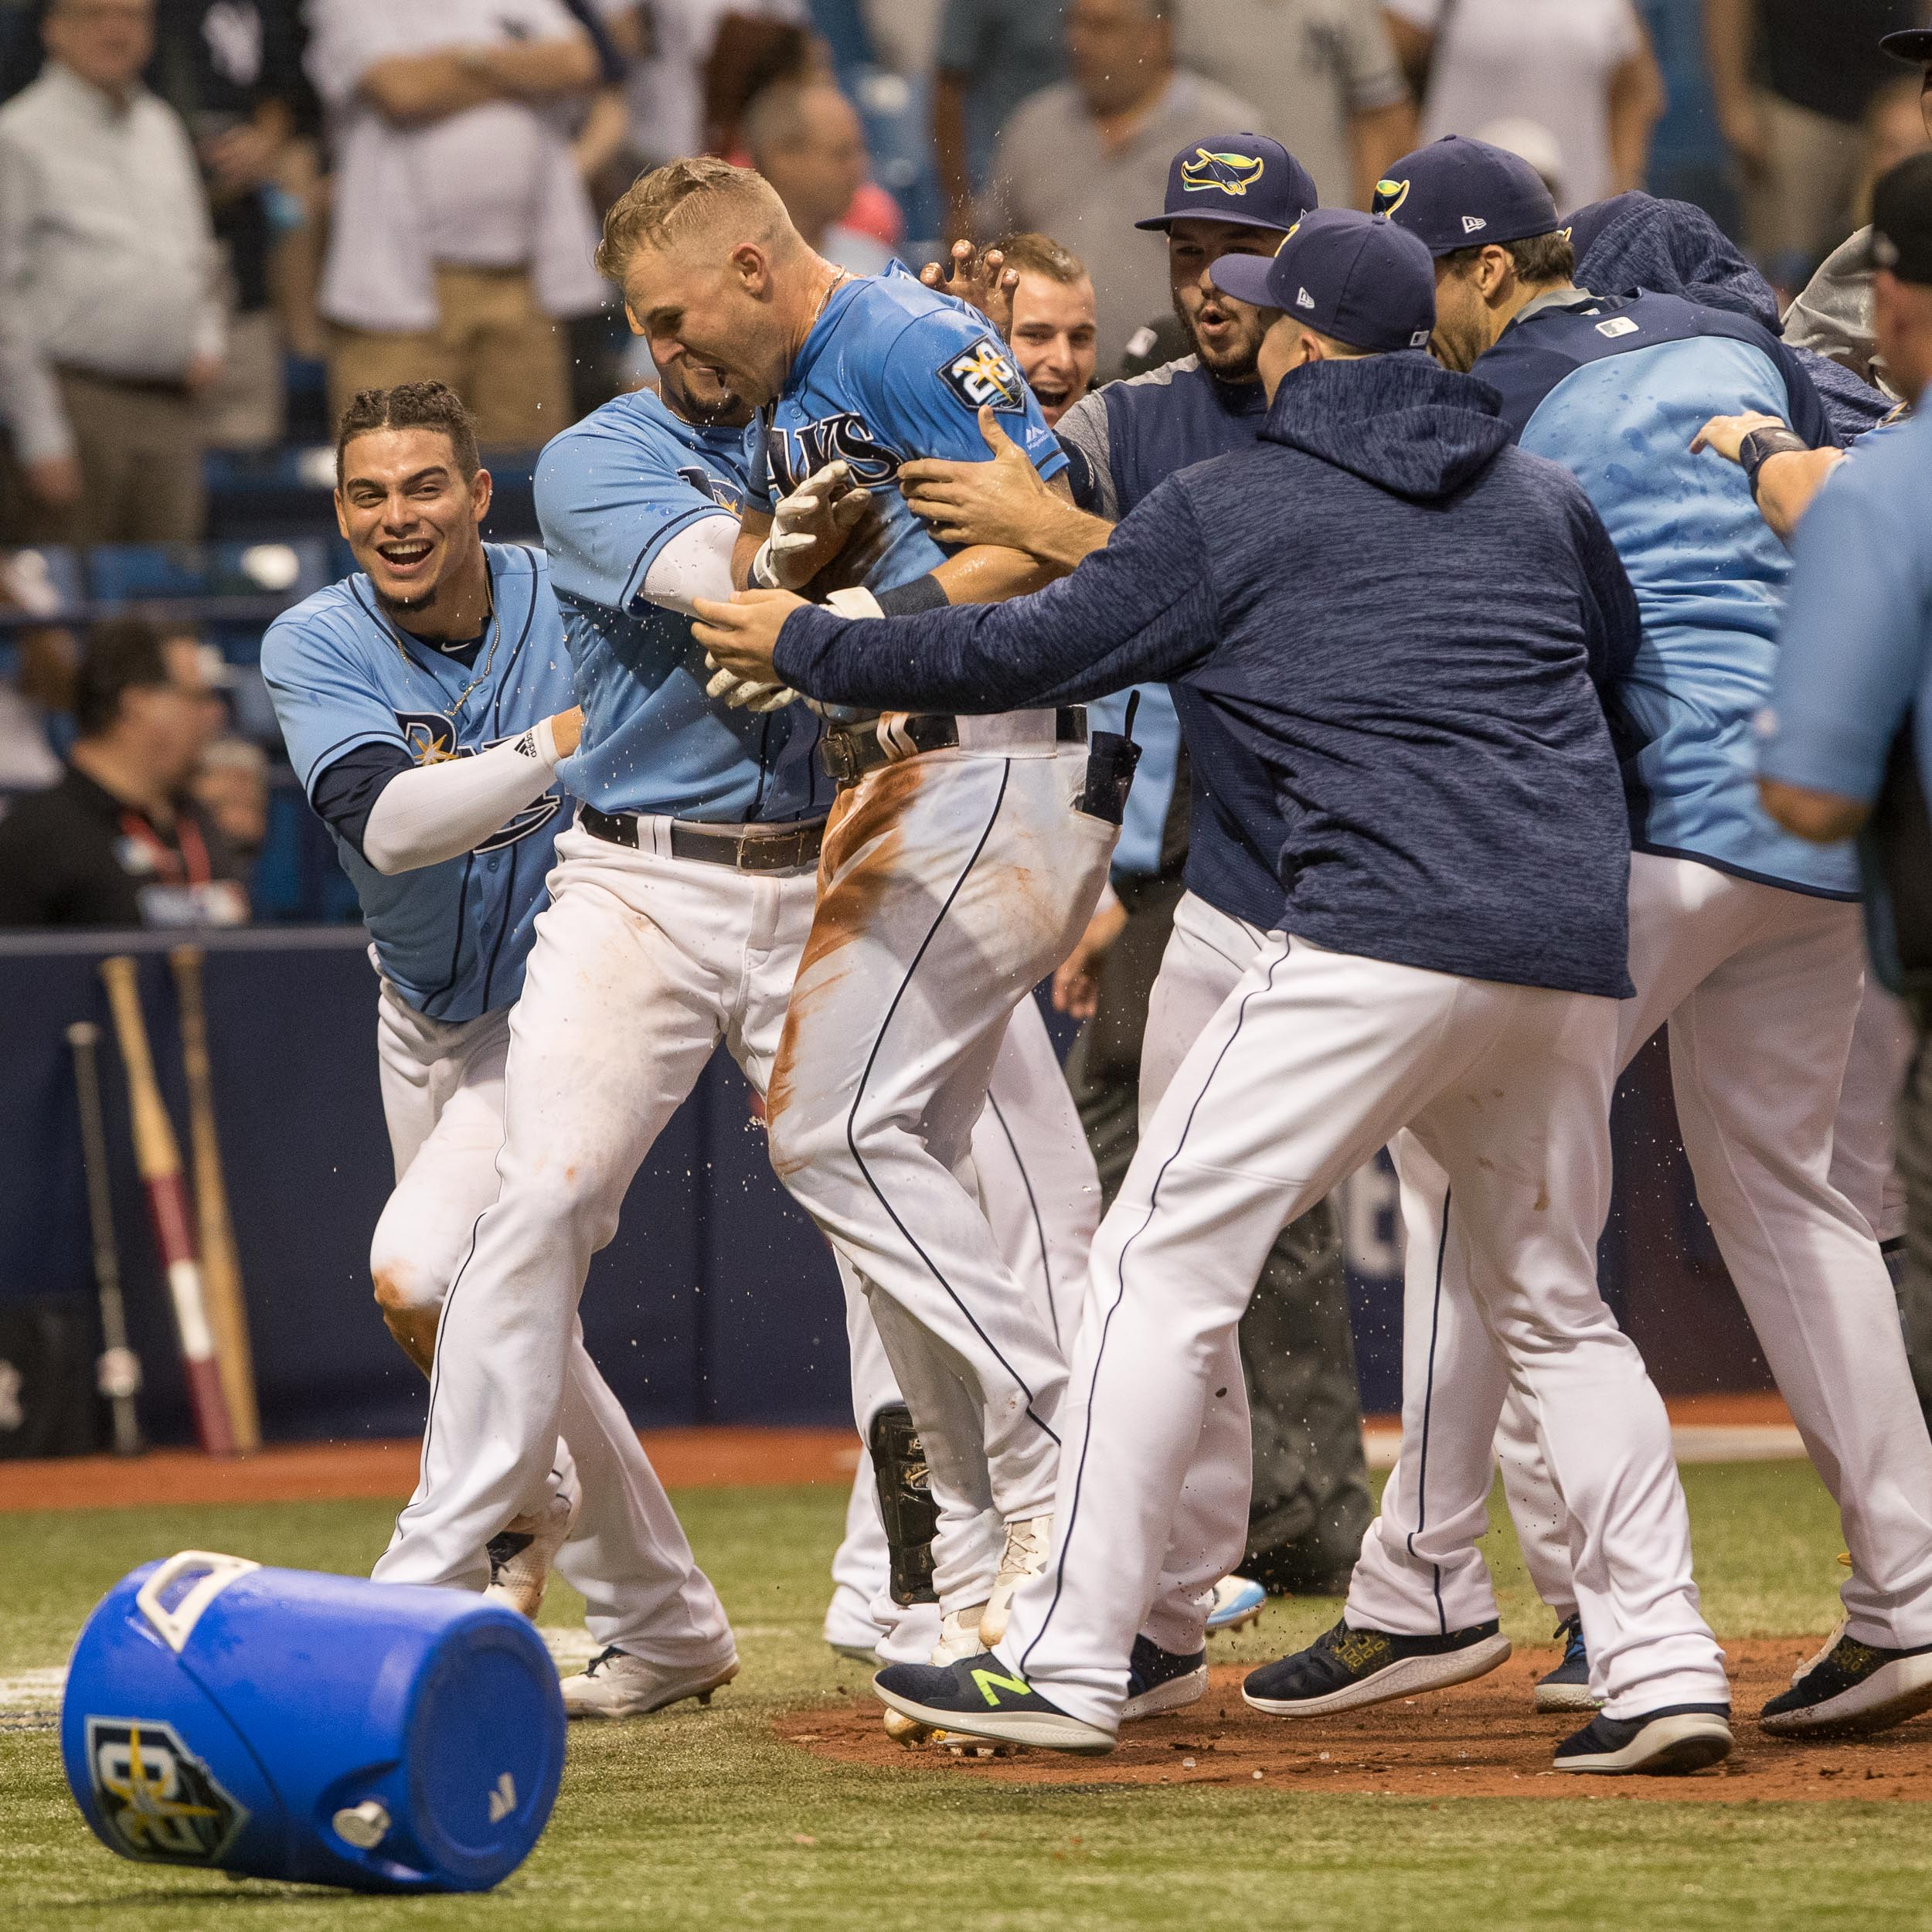 The Rays' celebrate their sweep of the Yankees../STEVEN MUNICE